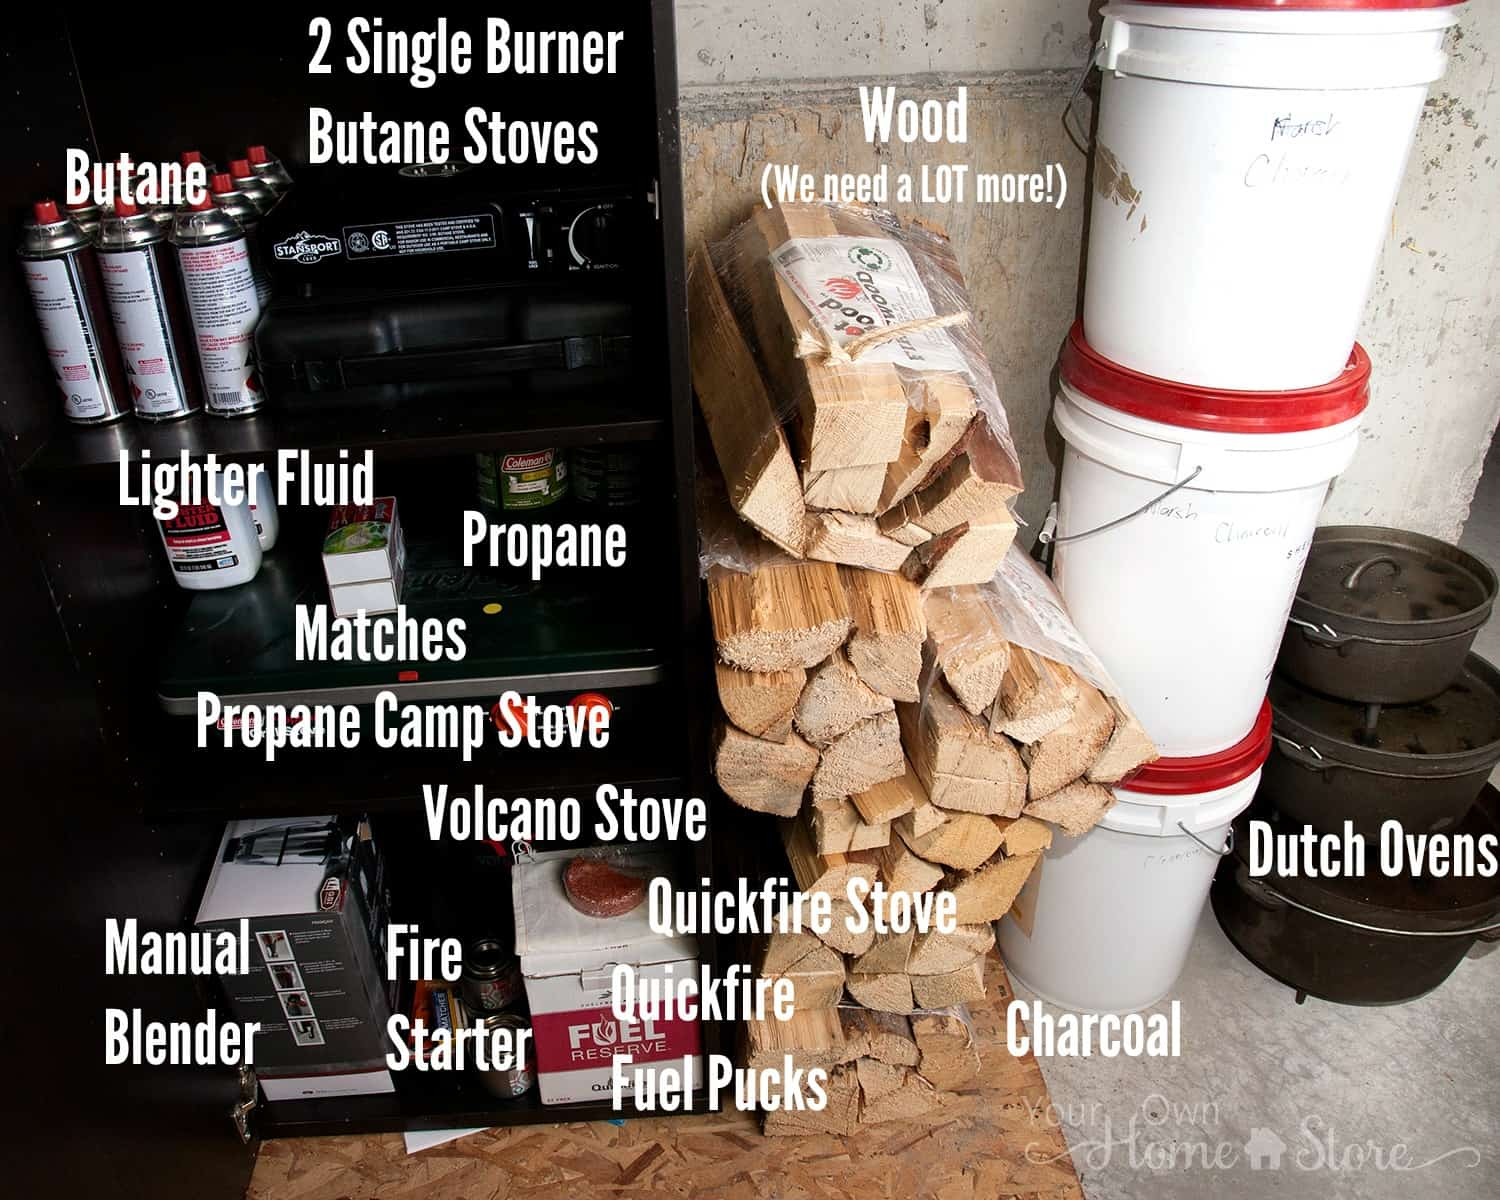 Take 10 minutes and move all your power out supplies together. https://simplefamilypreparedness.com/power-out-supplies-together/